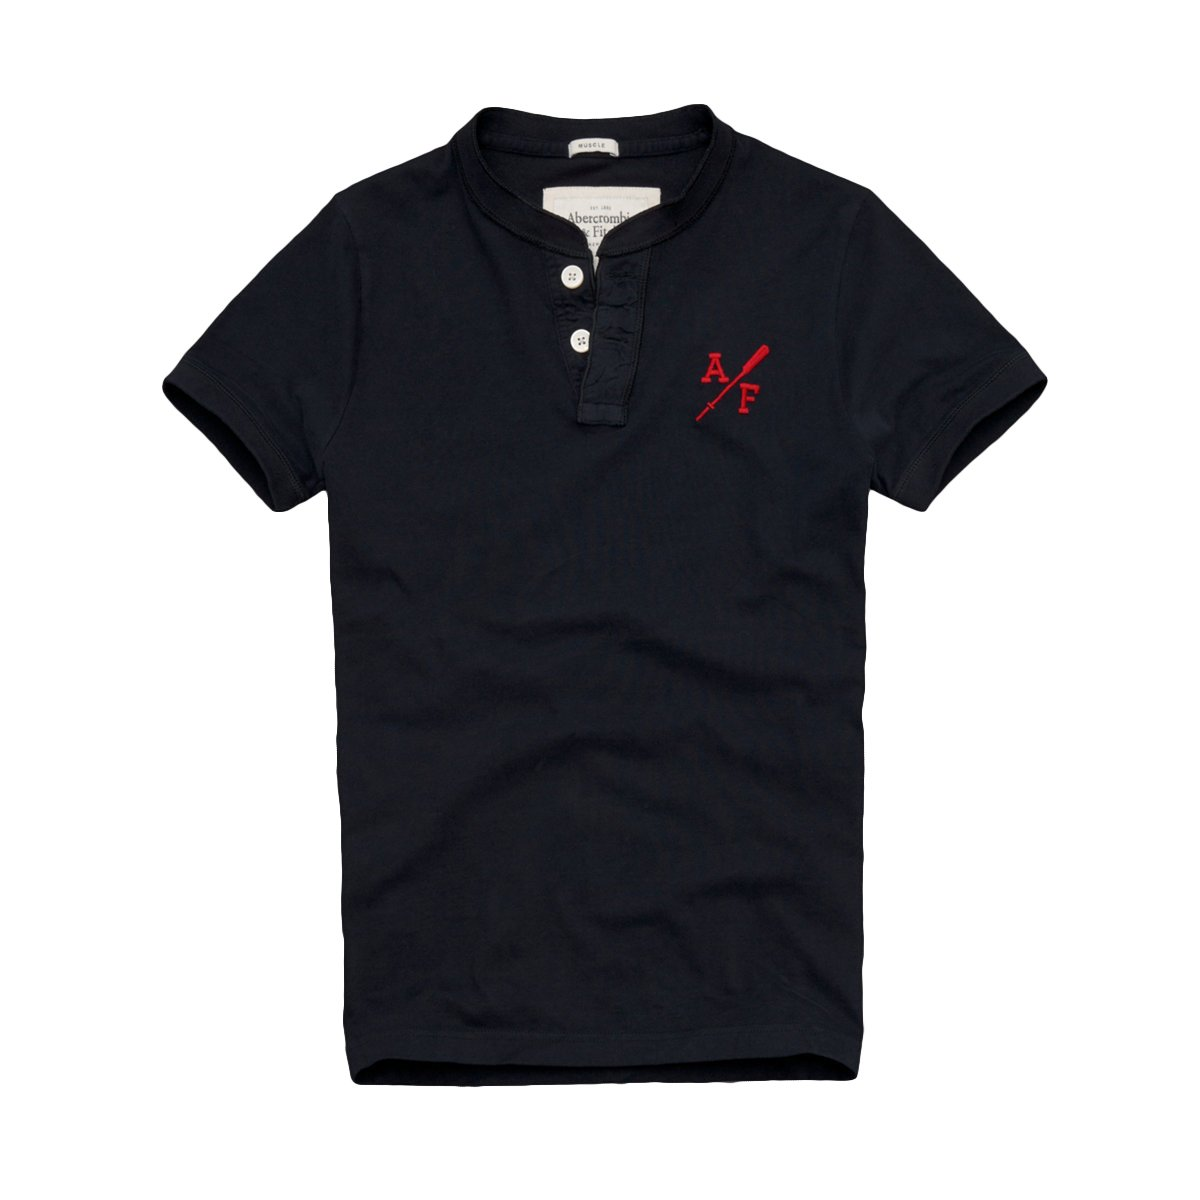 35c149d7 Abercrombie & Fitch Mens Henley T-Shirt (XXL, Navy): Amazon.co.uk: Clothing